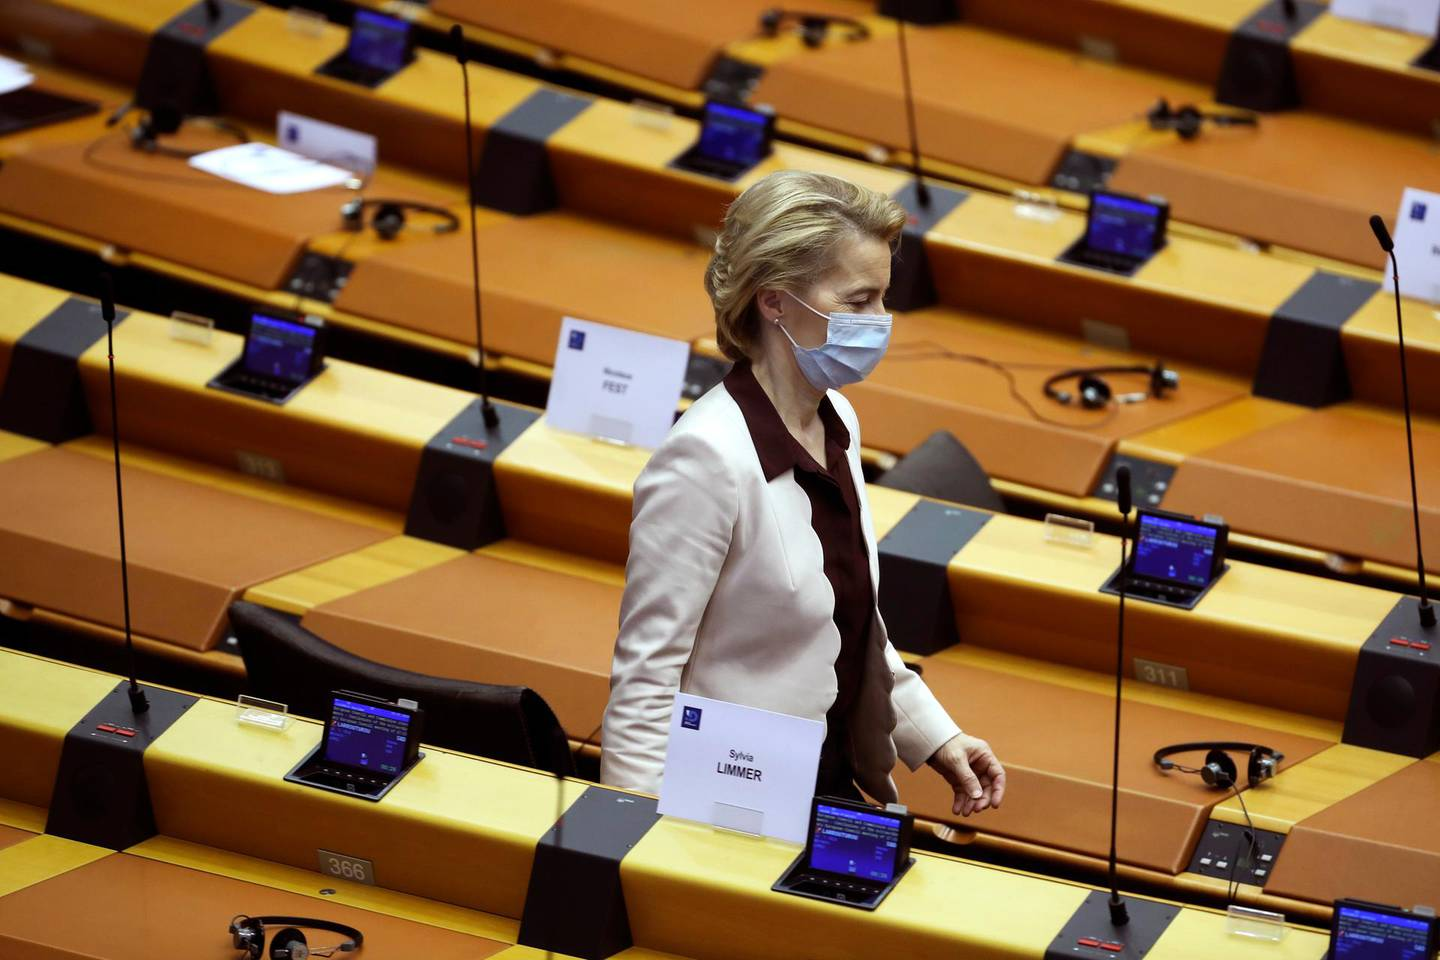 European Commission President Ursula von der Leyen wearing a mask to protect against coronavirus, leaves the main chamber of the European Parliament in Brussels, Thursday, July 23, 2020. European leaders took a historic step towards sharing financial burdens among the EU's 27 countries by agreeing to borrow and spend together to pull the economy out of the deep recession caused by the coronavirus outbreak. (AP Photo/Francisco Seco)